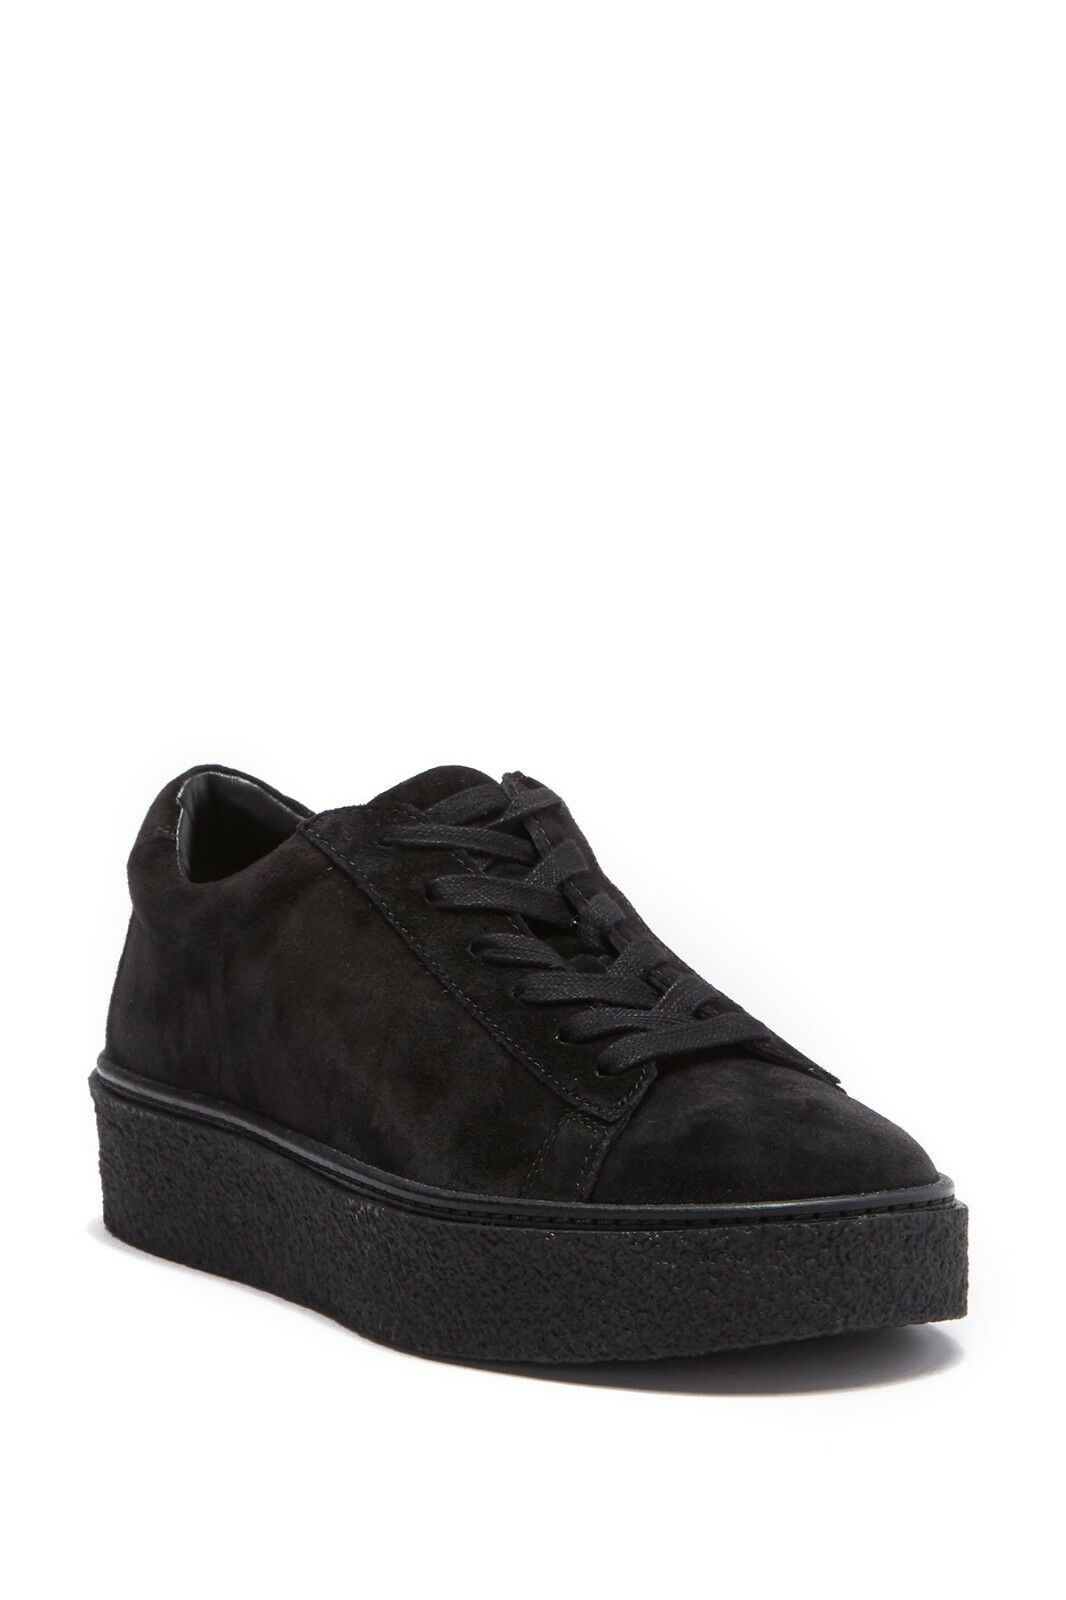 NEW NEW NEW Vince Neela Lace-up Platform Sneakers, Black Suede,  Women Size 6.5,  295 346a54